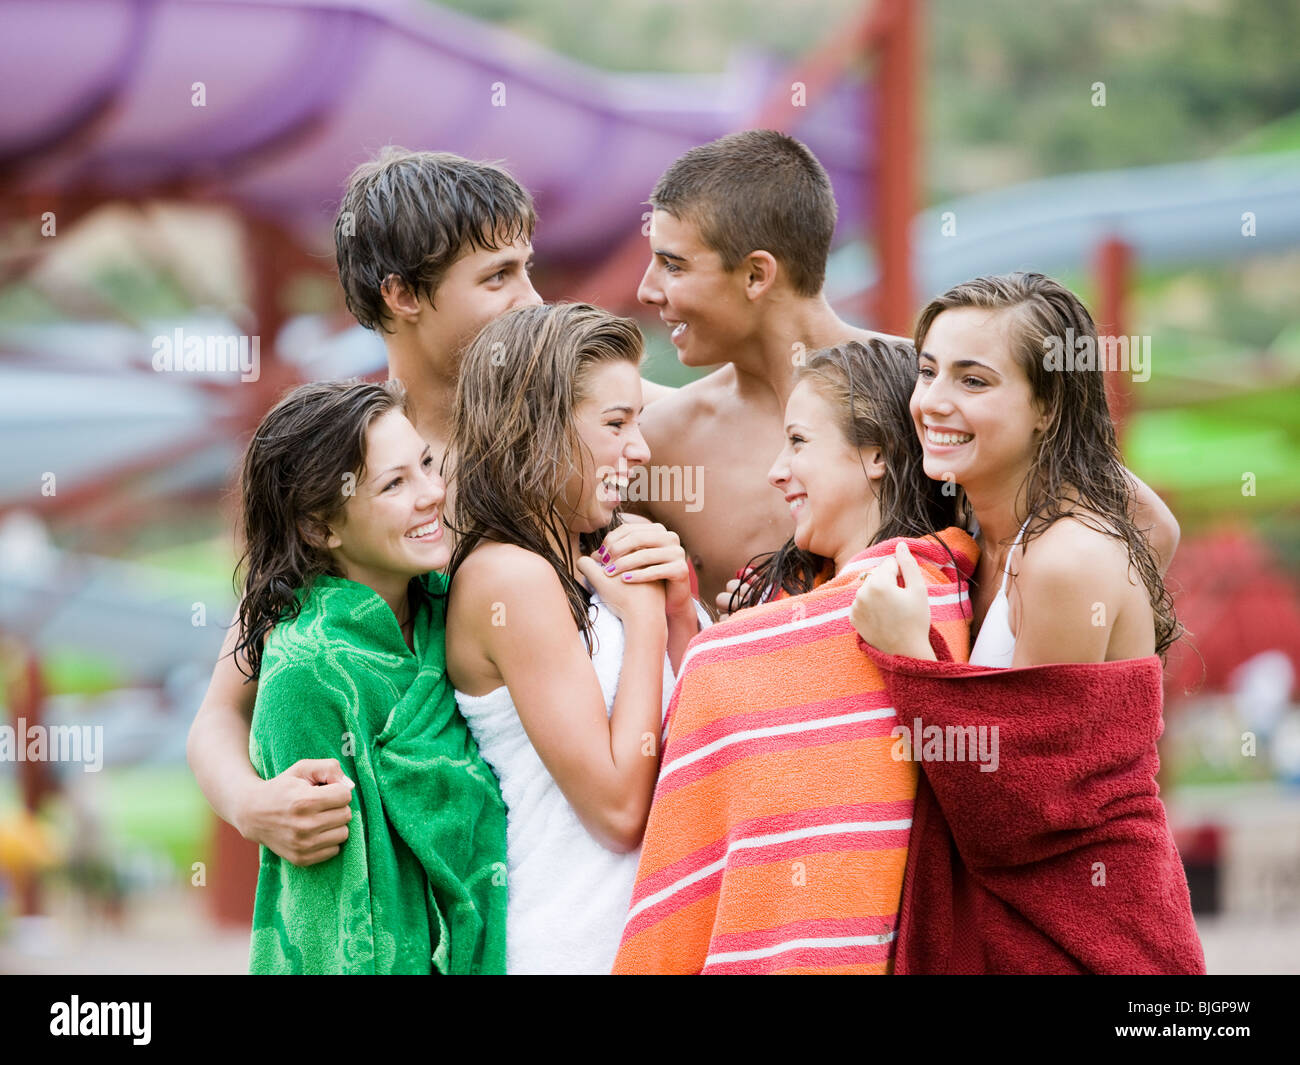 teenagers at a waterpark - Stock Image